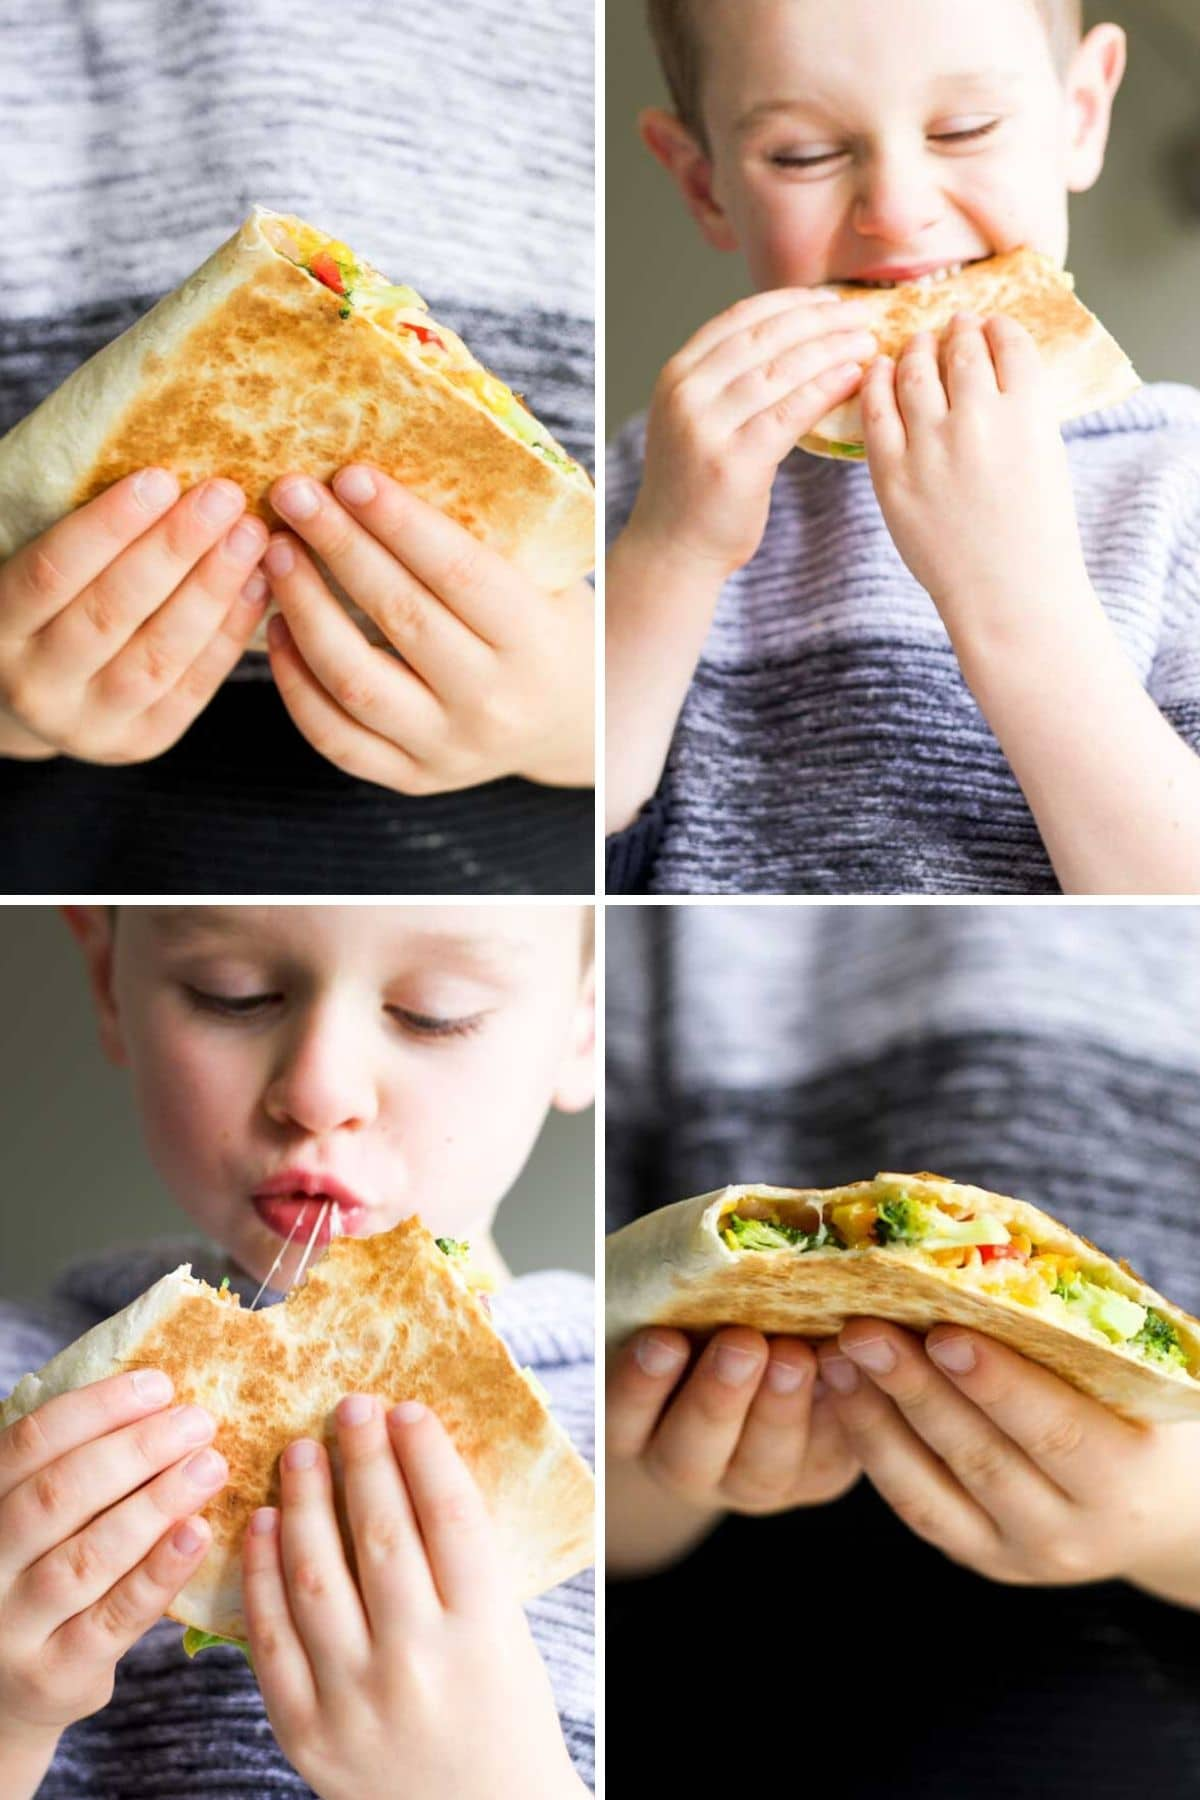 Collage of 4 Pictures Showing Child Eating Vegetable Quesadillas